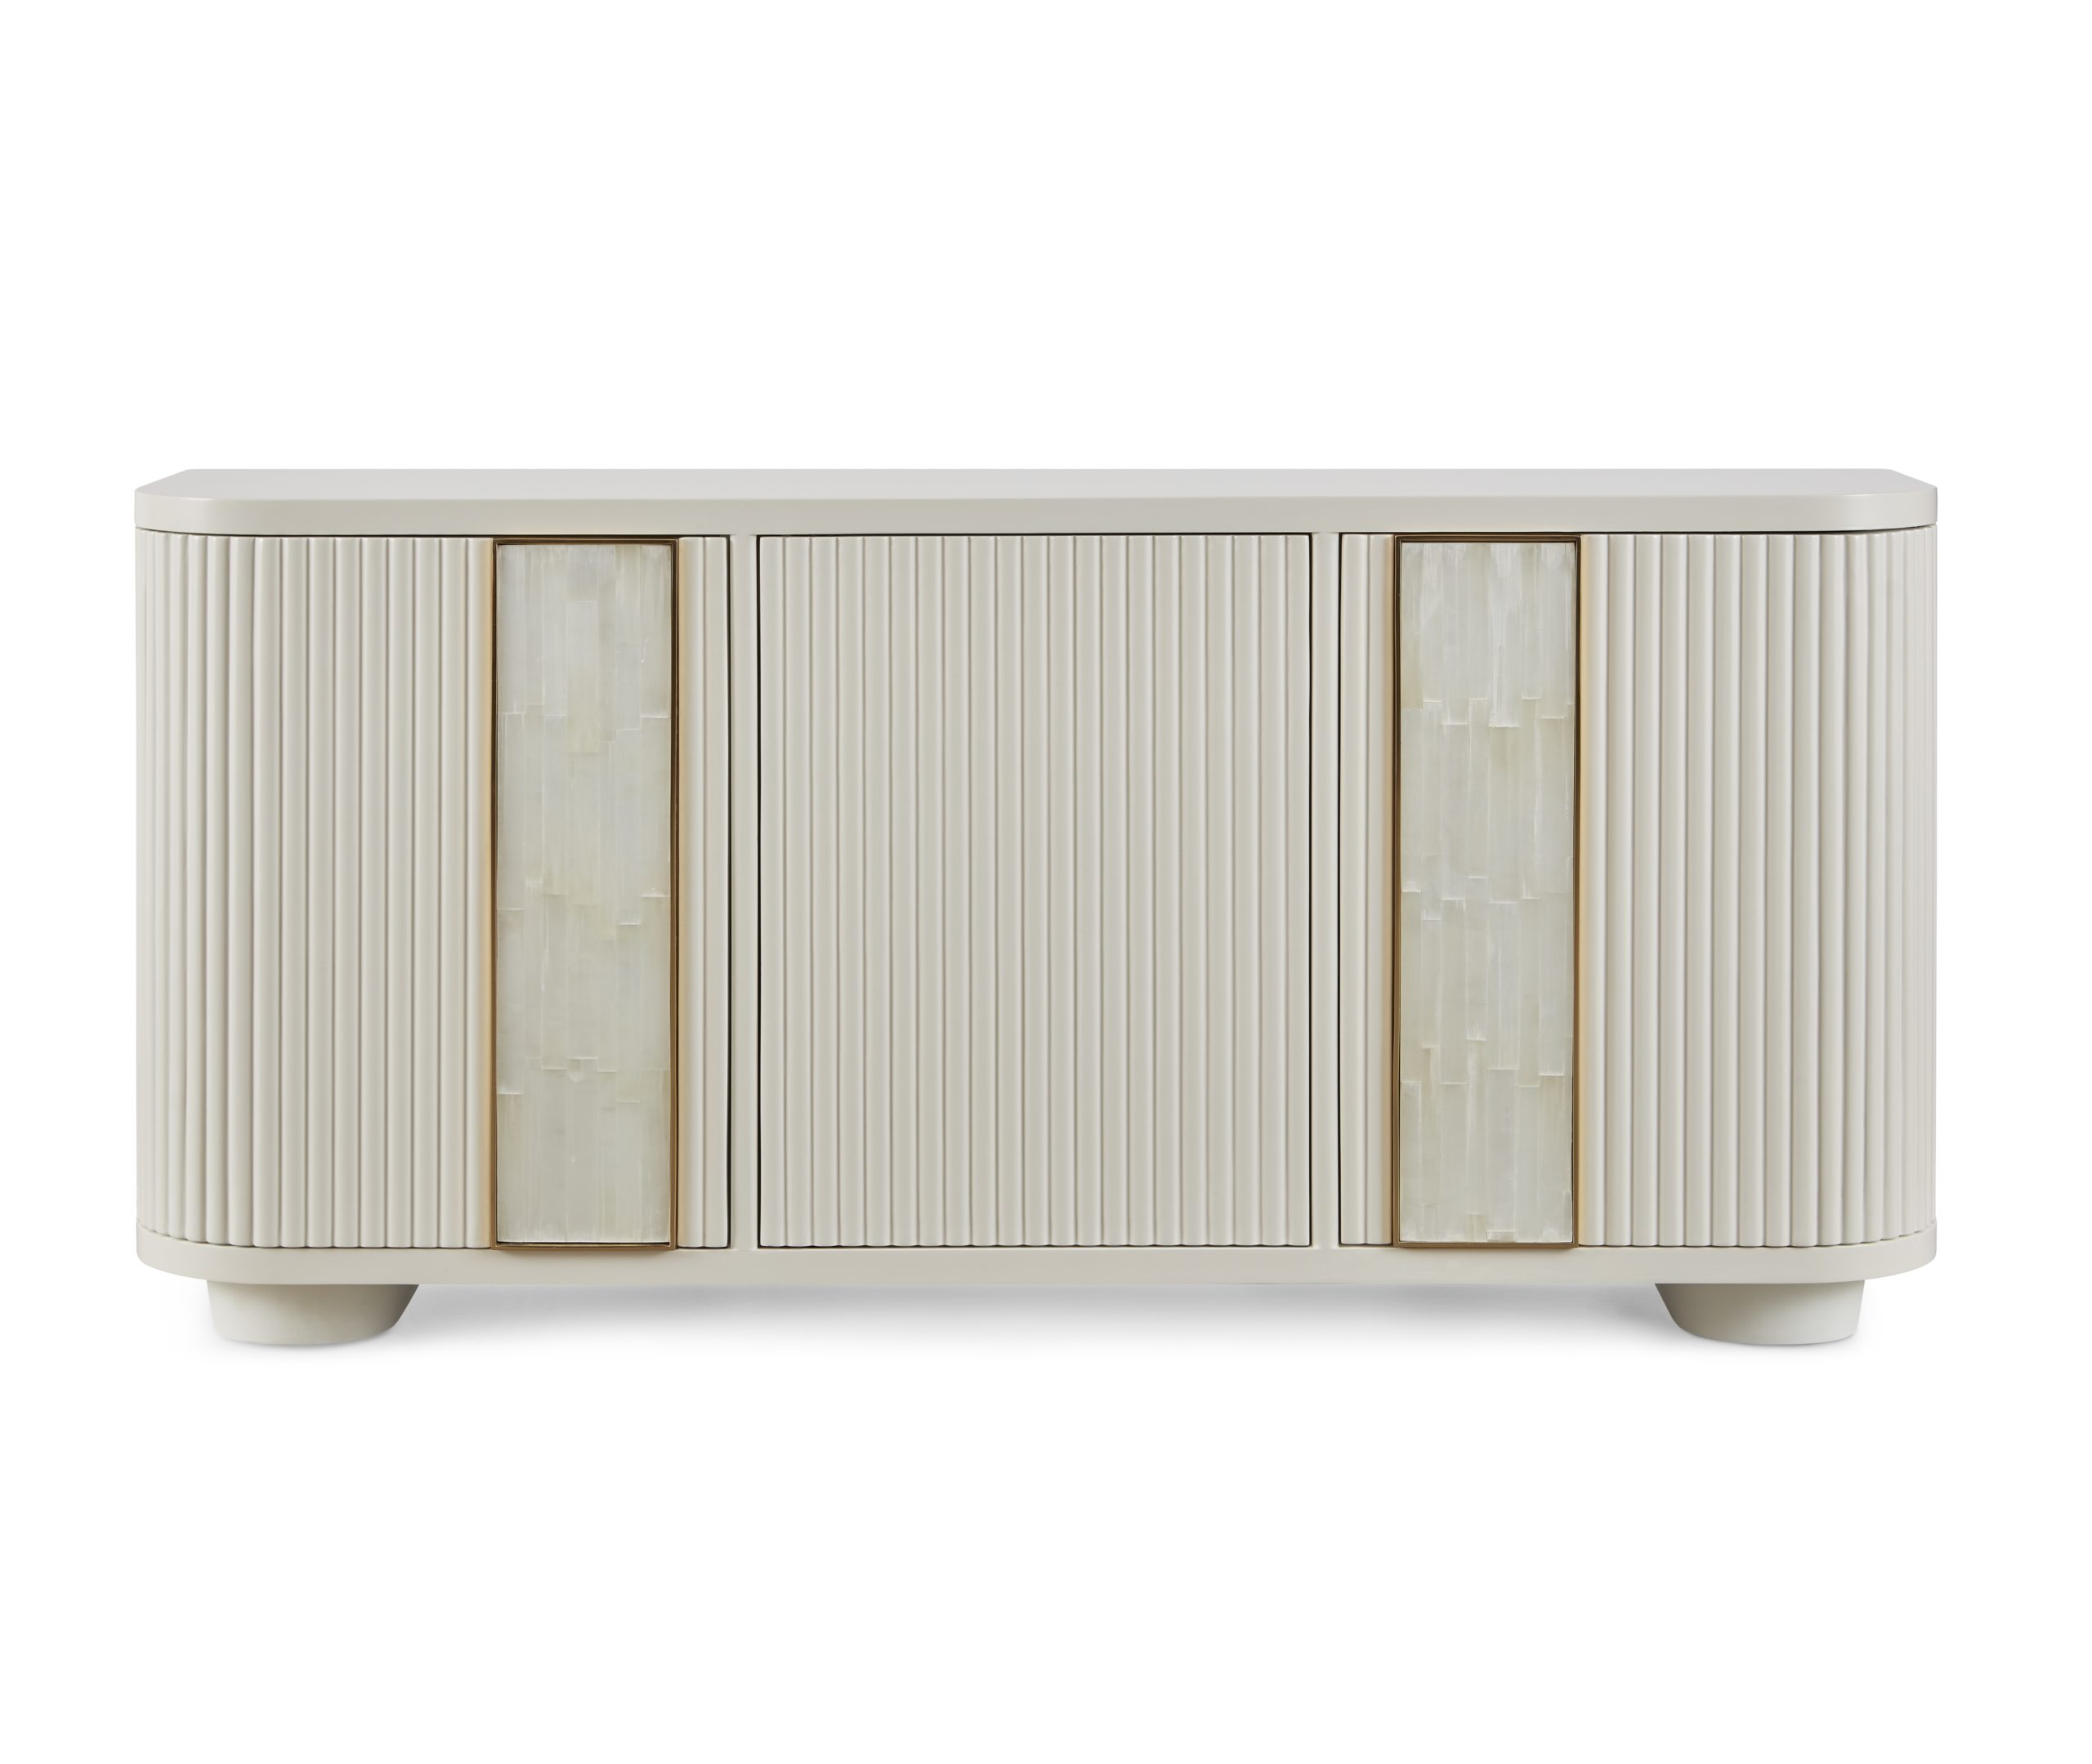 Baker_products_WNWN_harmony_credenza_BAA3275_FRONT-scaled-1